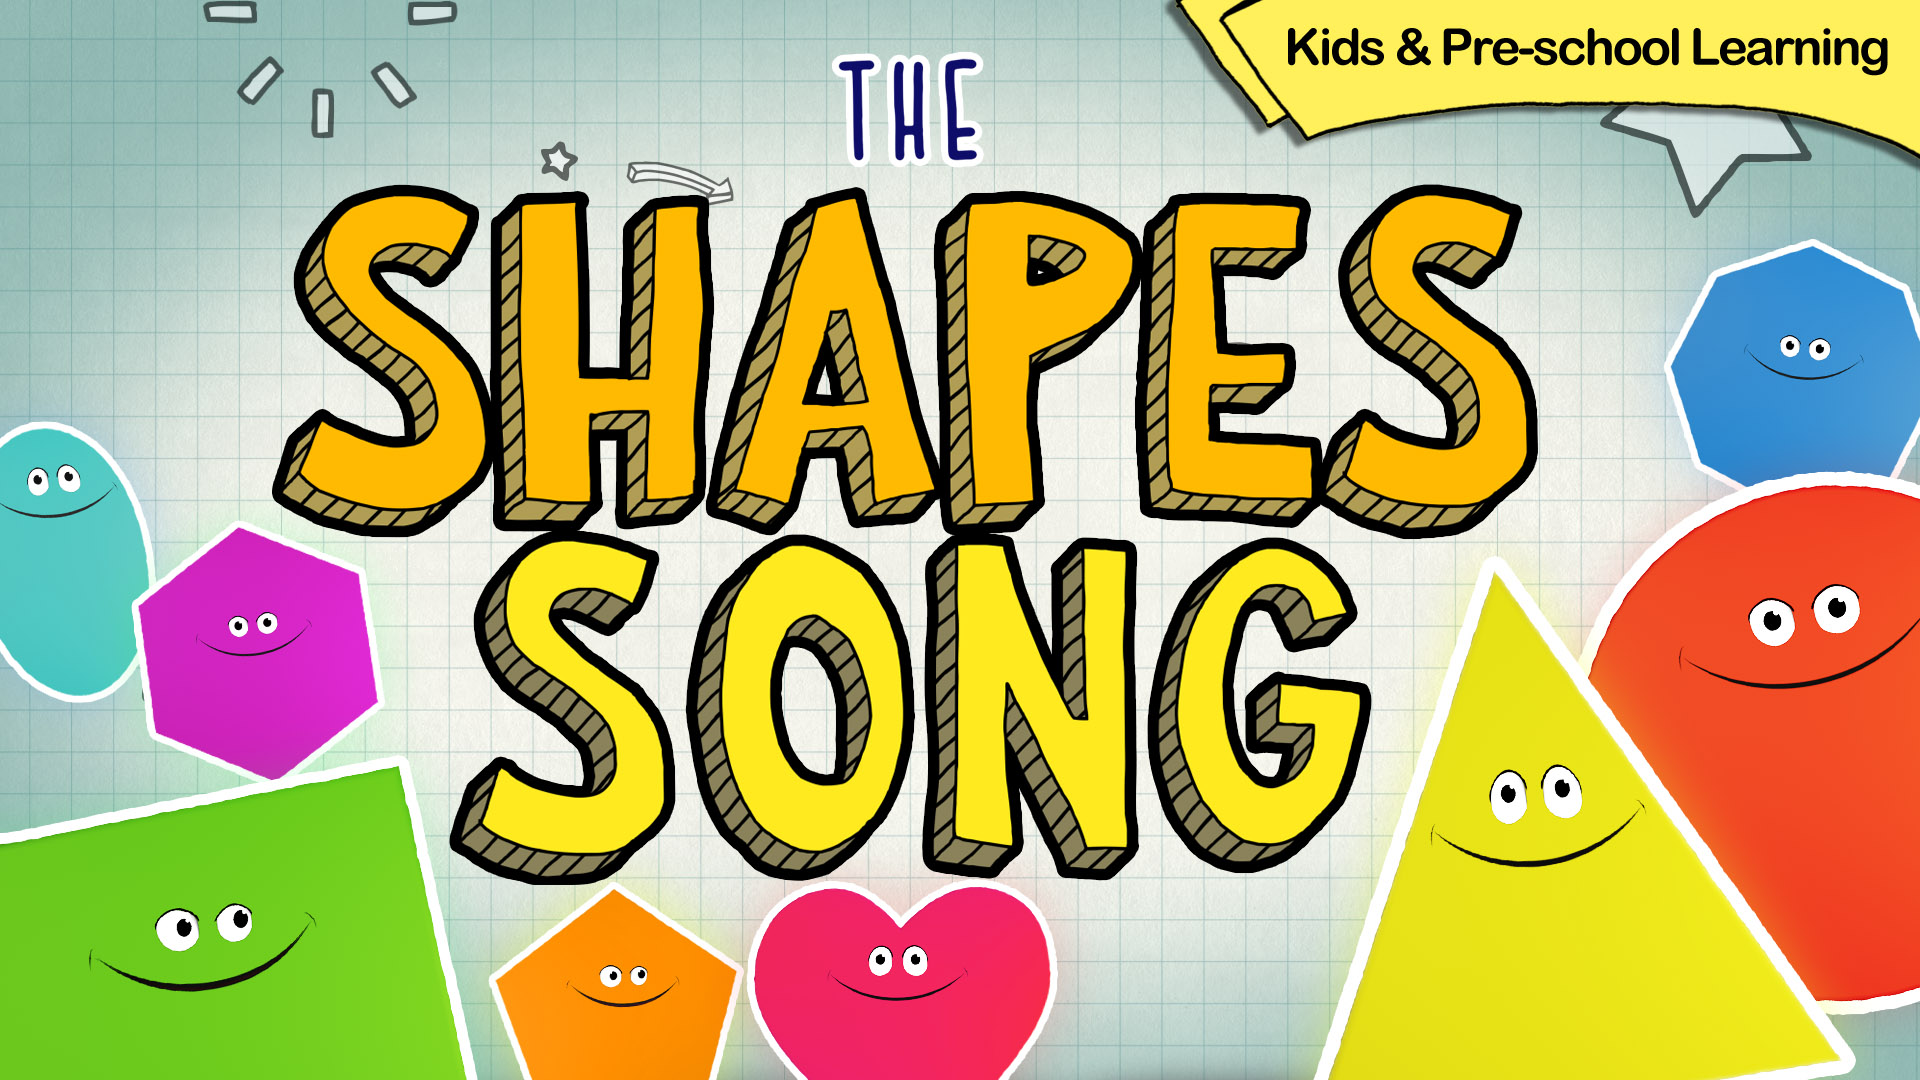 The Shapes Song, Kids and Pre-school Learning